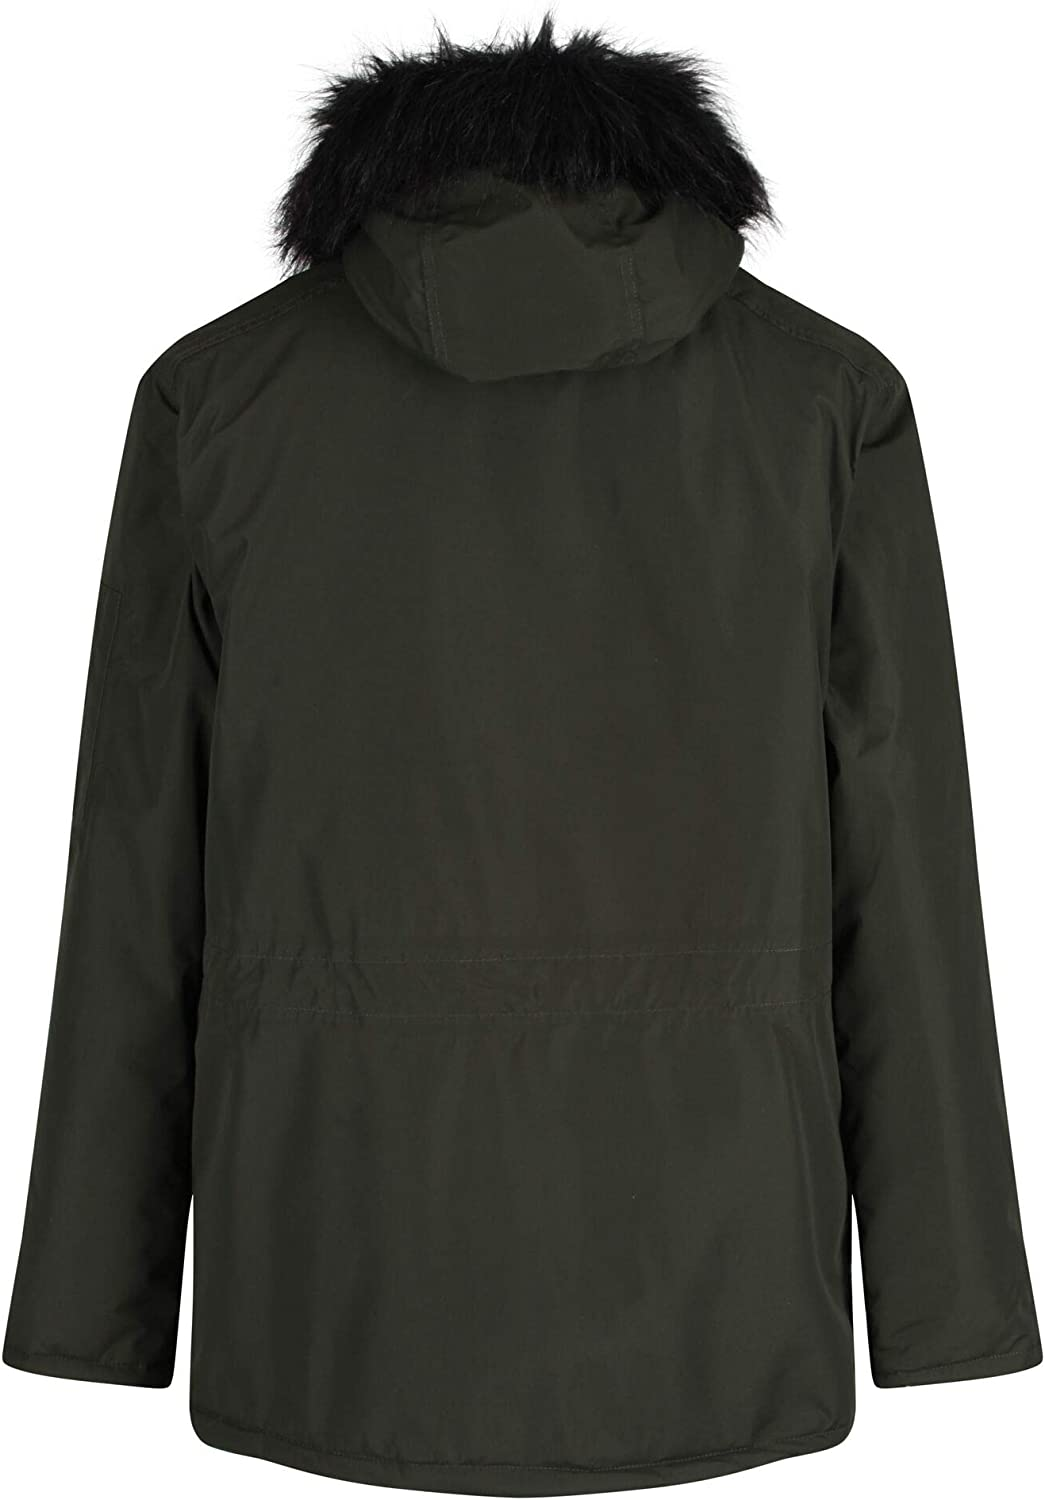 Giacca Uomo Regatta Salinger Waterproof /& Breathable Thermo-Guard Insulated Winter Parka Jacket